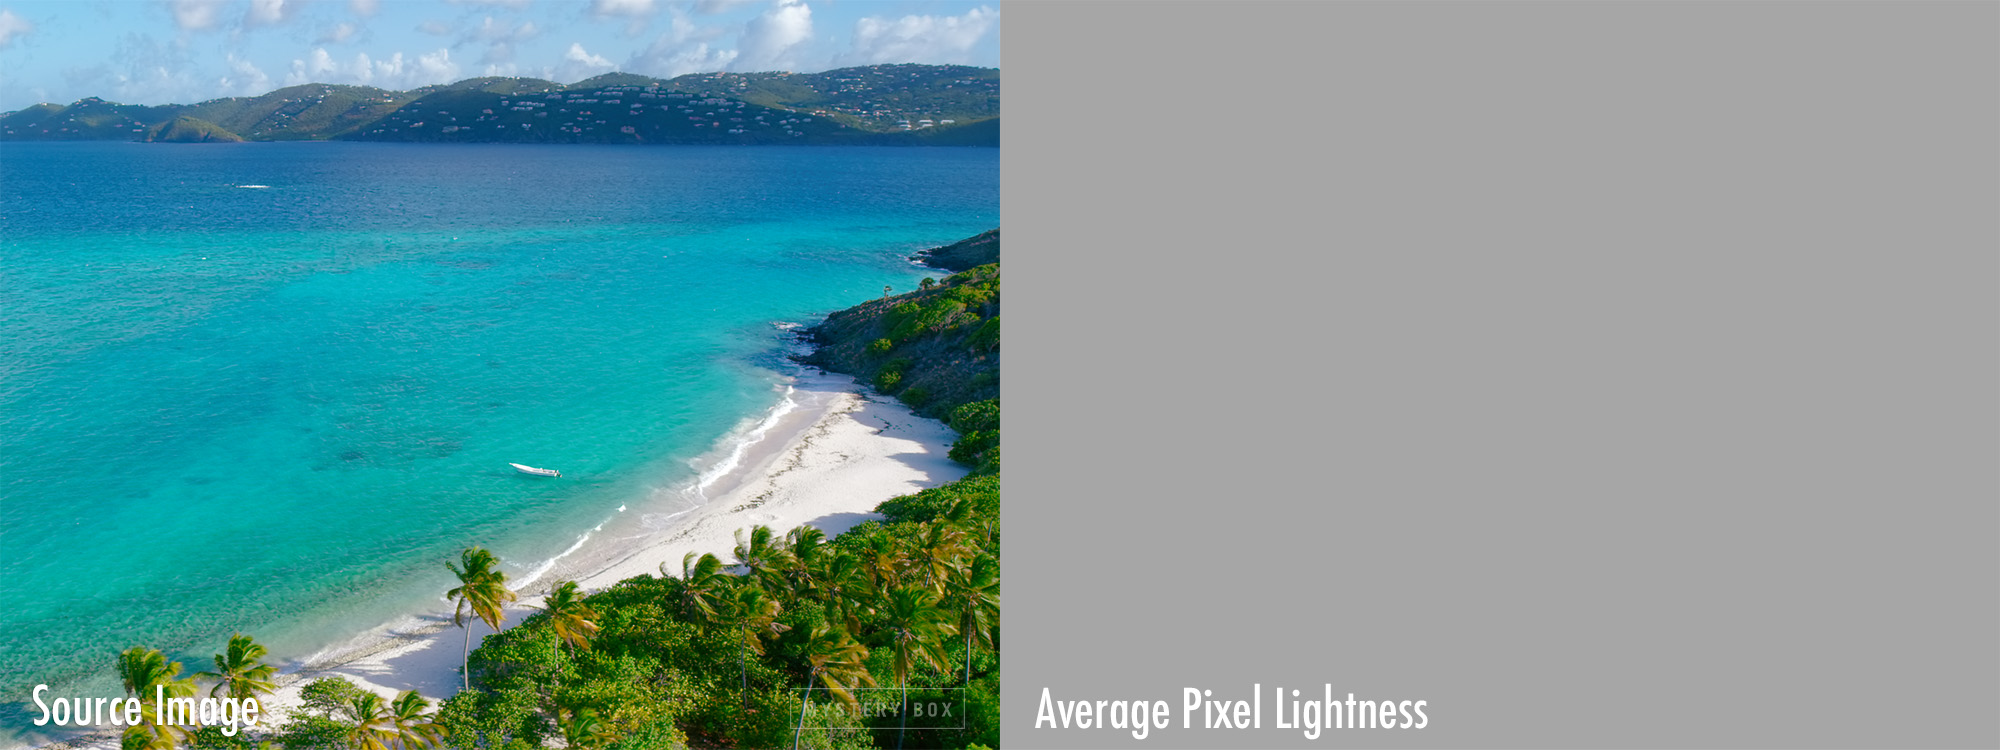 Average Pixel Brightness with Accompanying Source Image